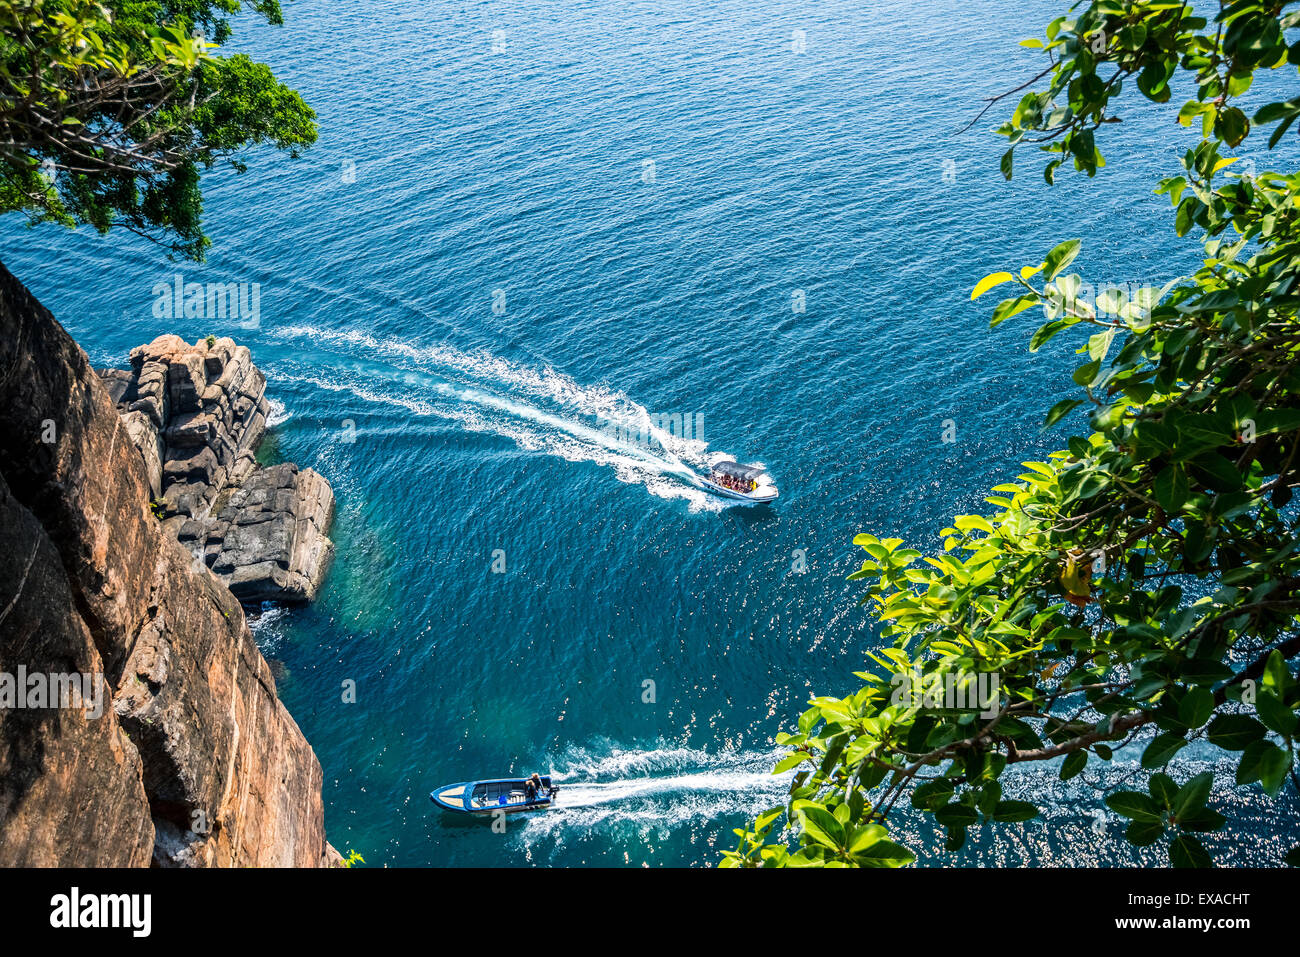 hale and dolphin watching boats in the beautiful ocean - Stock Image